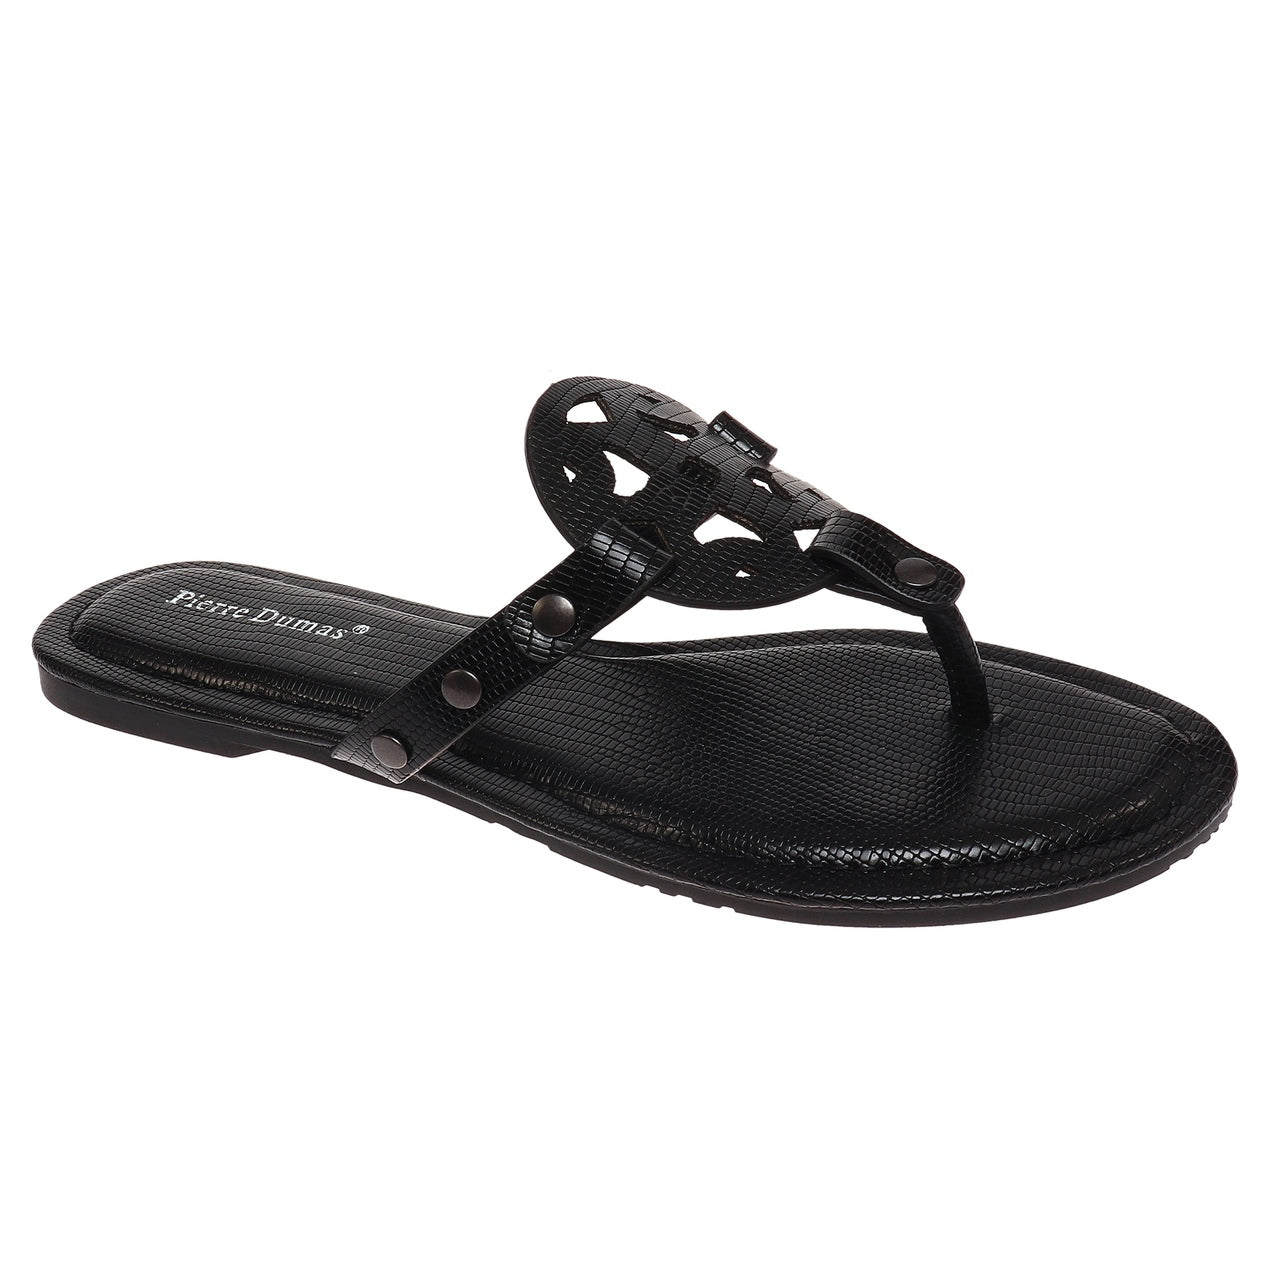 Circle Design Black Croc Sandal